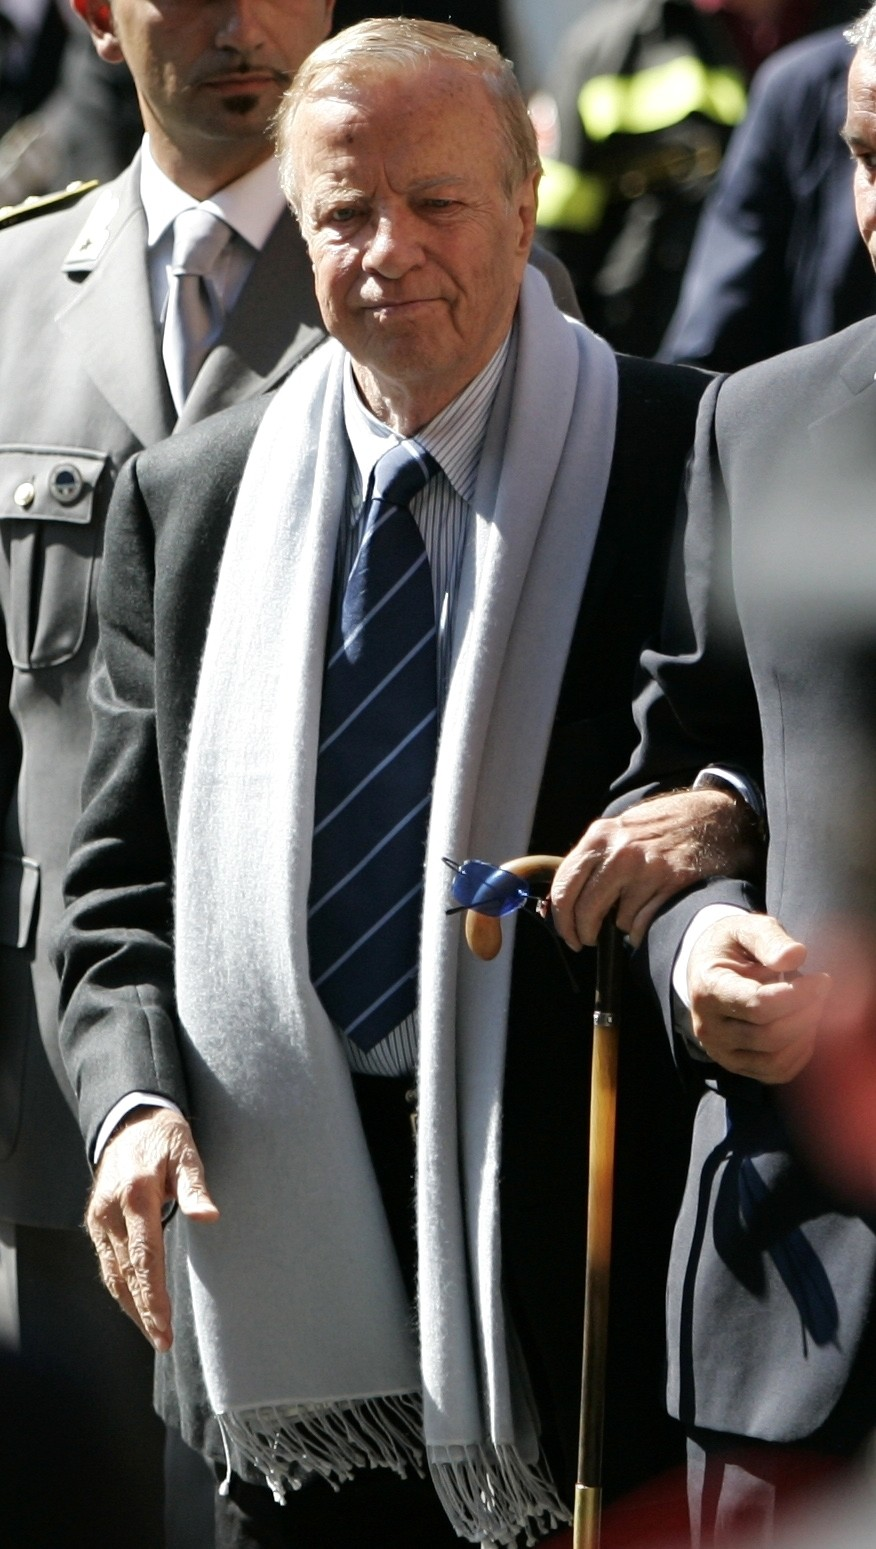 FILE - In this Saturday, Sept. 8, 2007 file photo, Italian movie director Franco Zeffirelli arrives at the funeral service of late Italian tenor Lucia...